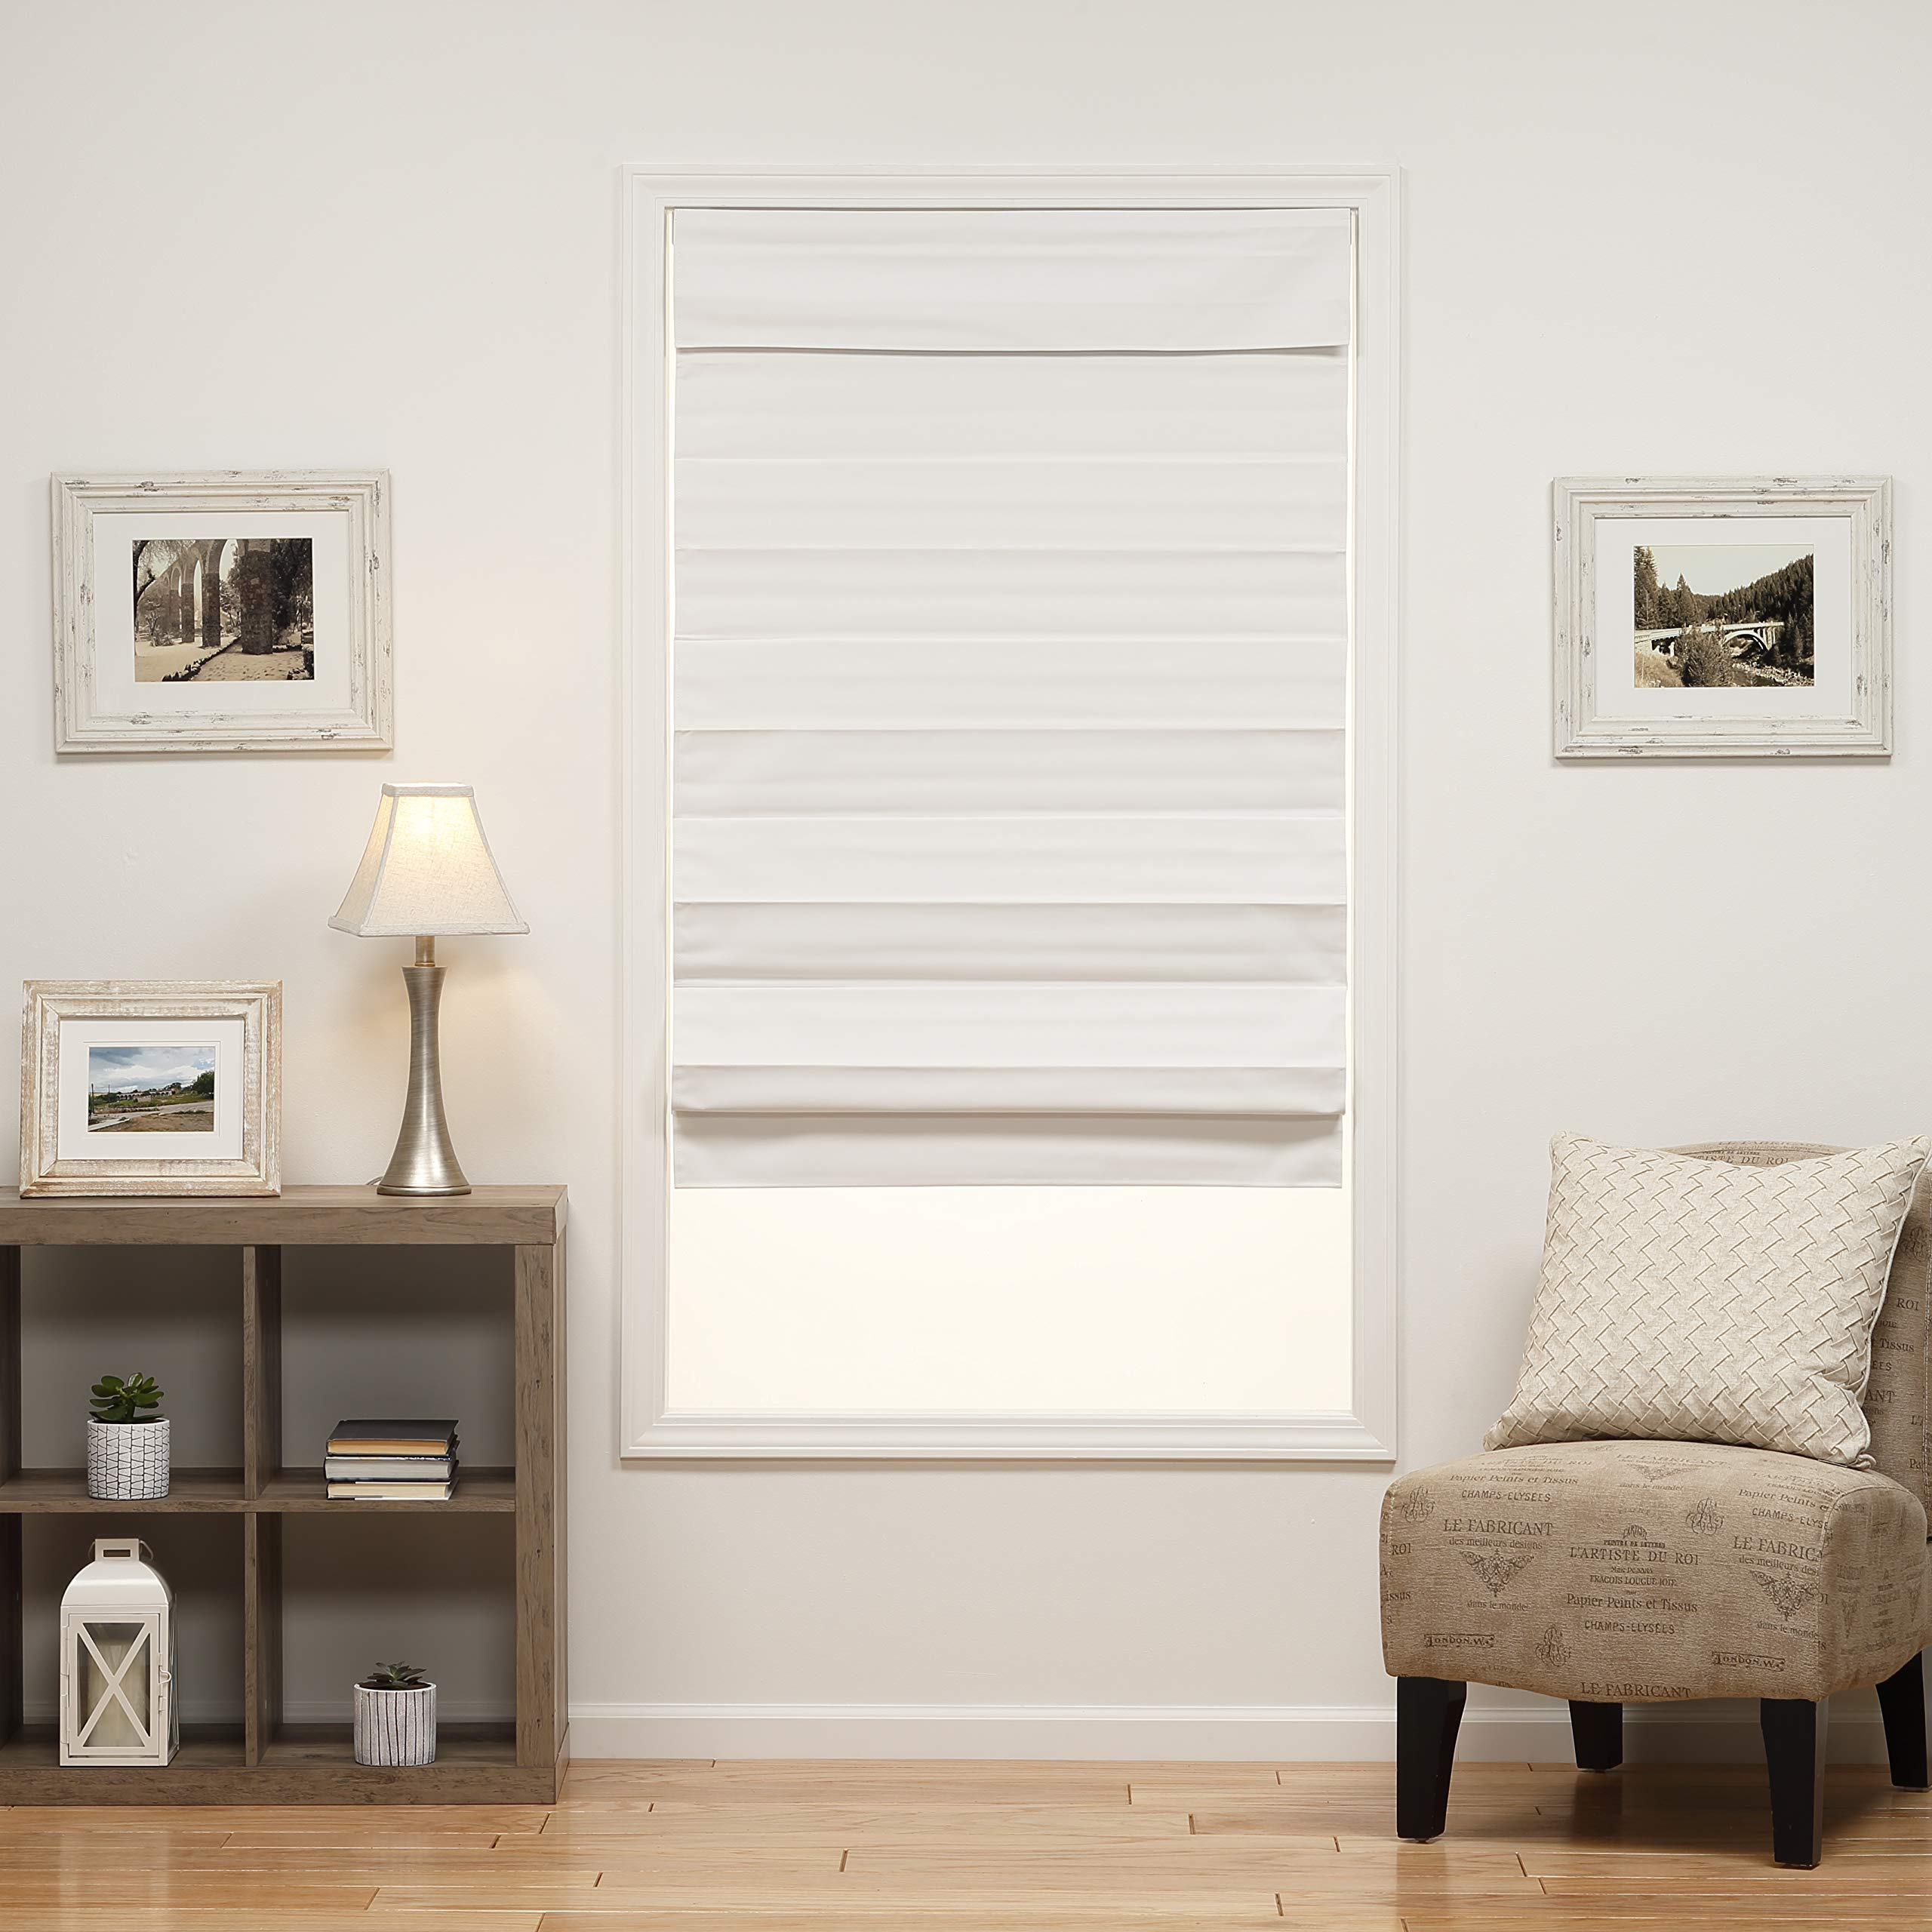 DEZ Furnishings 3QWT360720 Insulating Cordless Roman Shade, 36W x 72L Inches, White